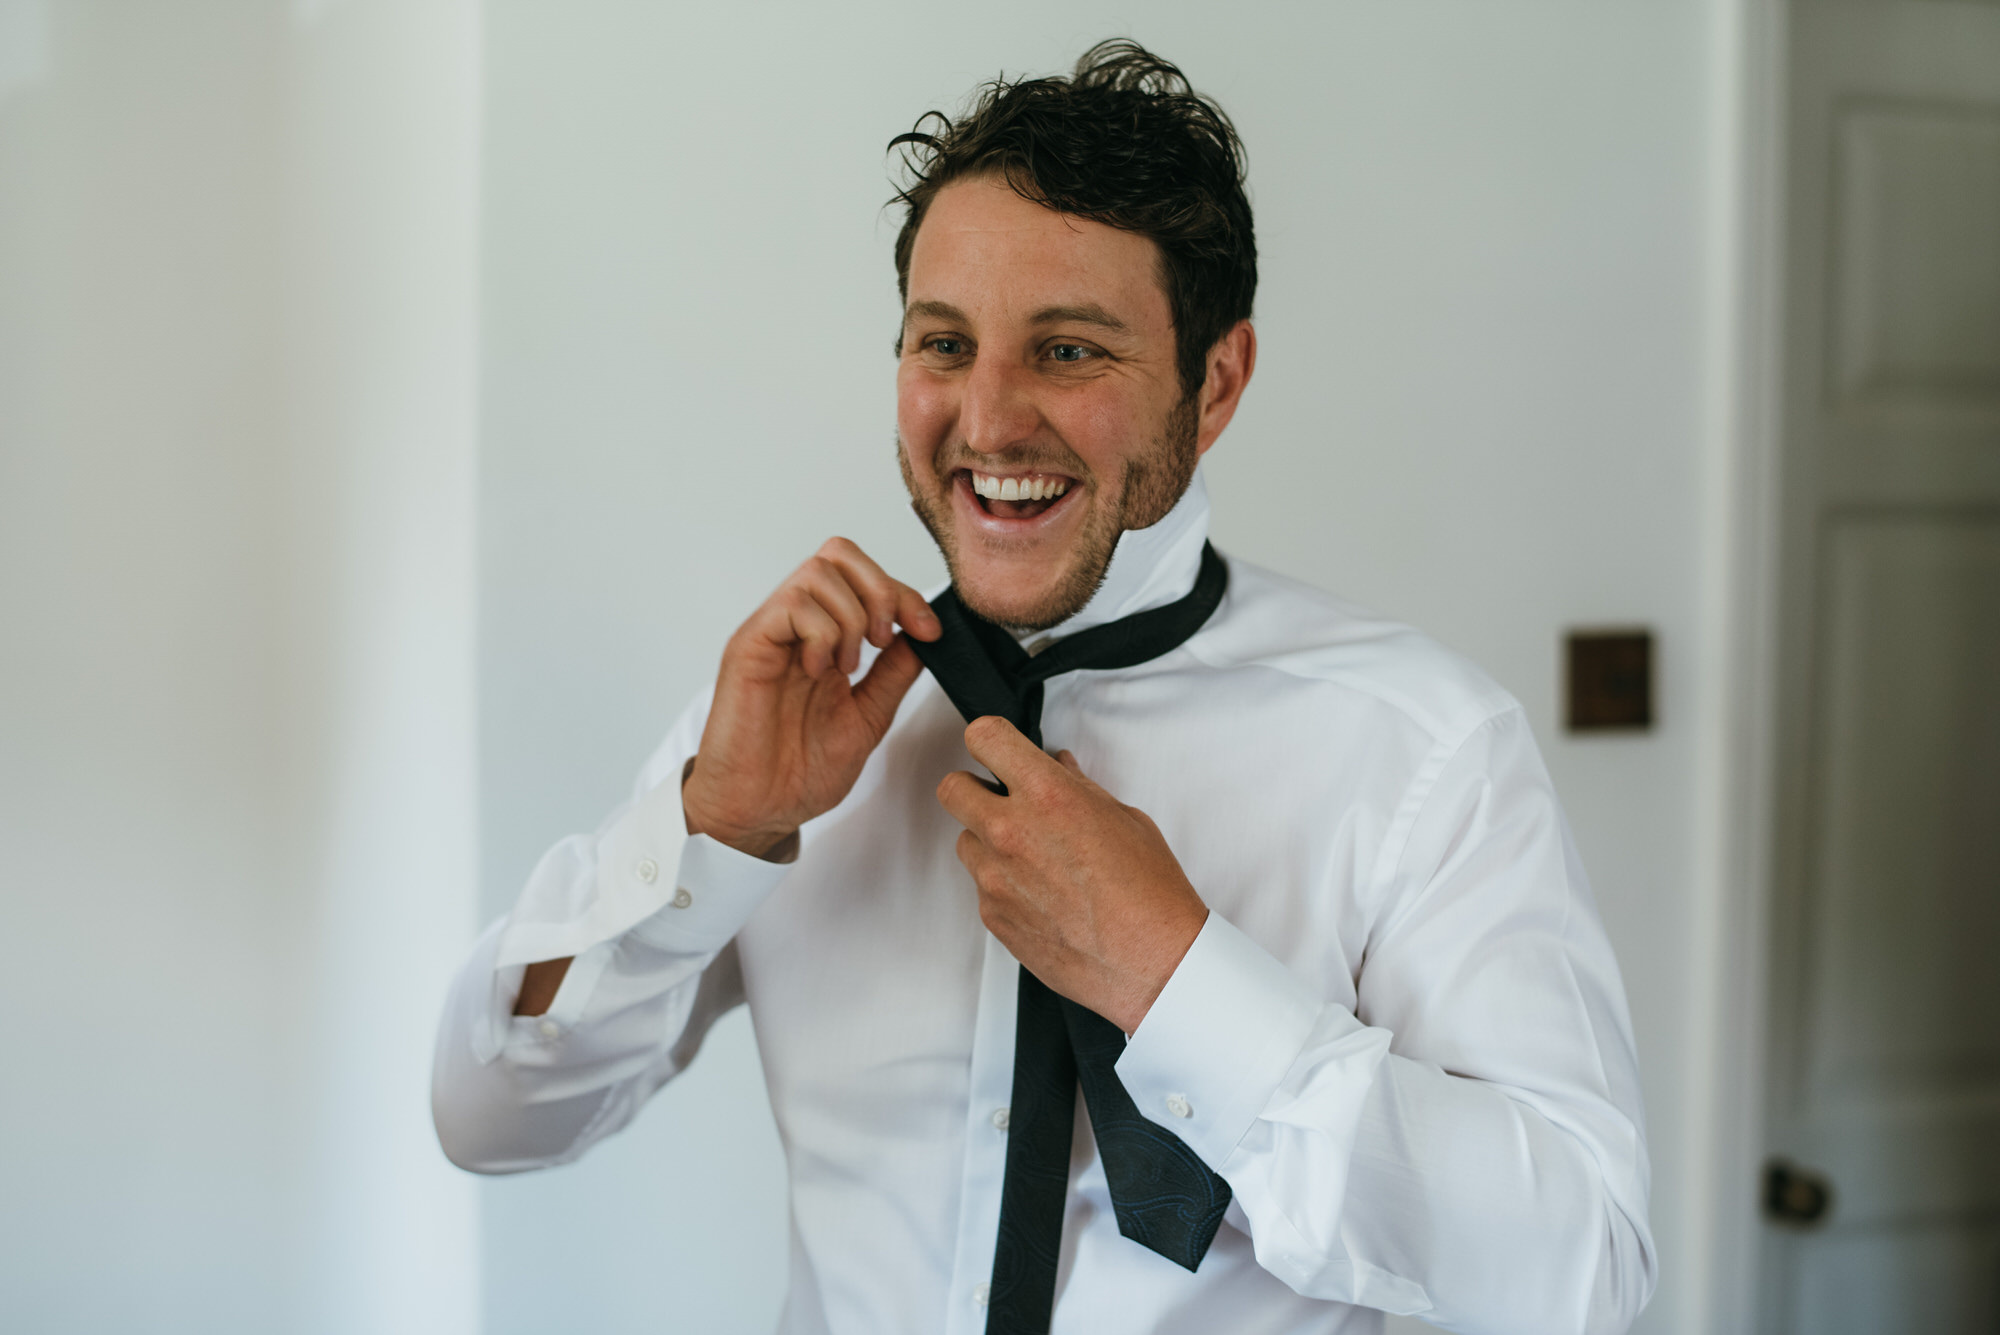 Groom puts on tie